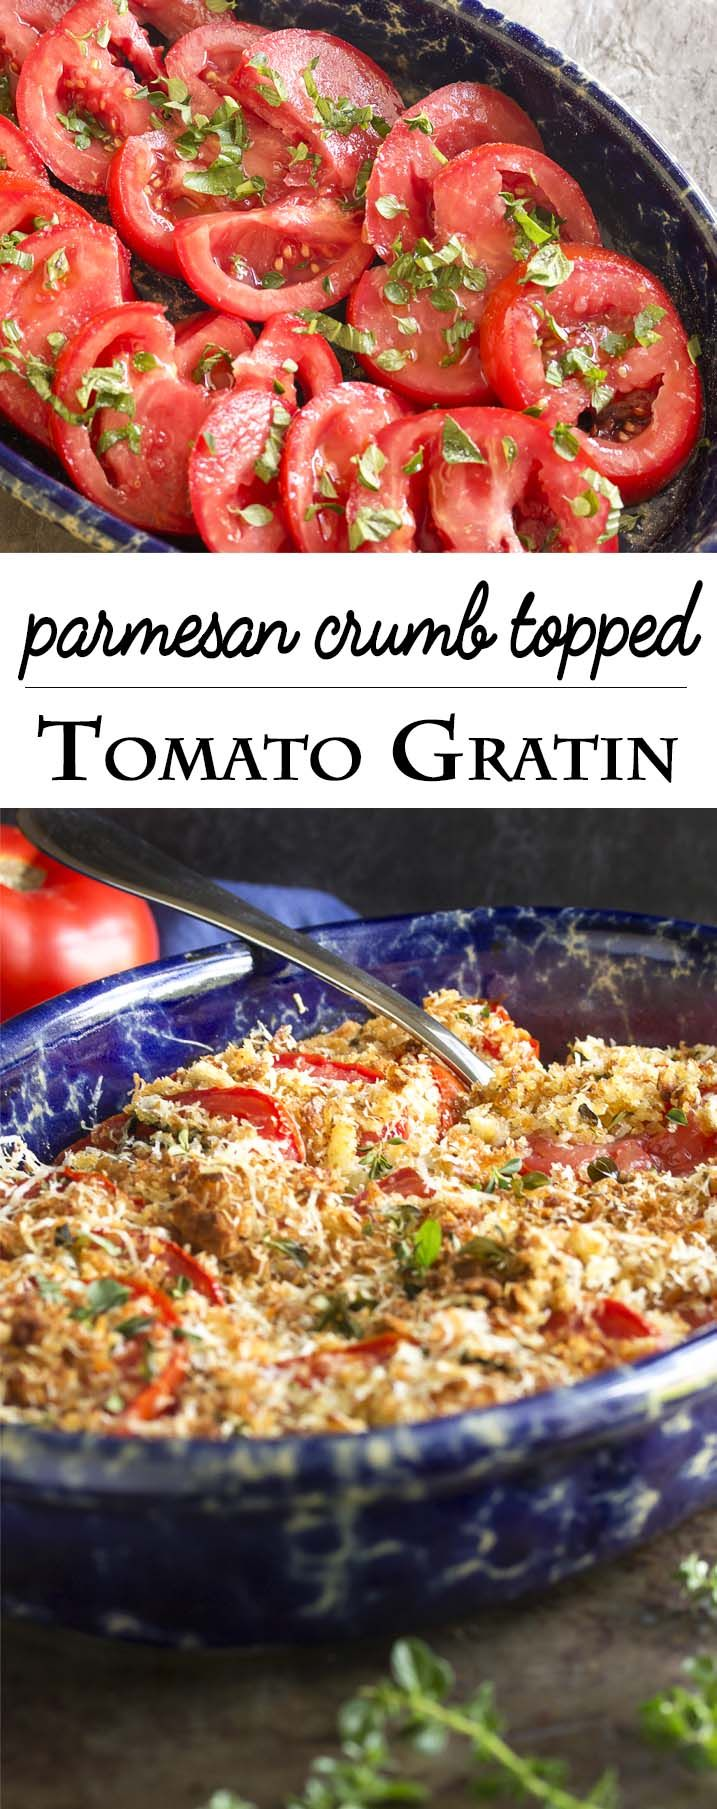 Baked Sliced Tomato Gratin - Fresh, summer tomatoes are best cooked simply like in this tomato gratin of sliced tomatoes layered with olive oil and herbs and then topped with parmesan breadcrumbs.   justalittlebitofbacon.com